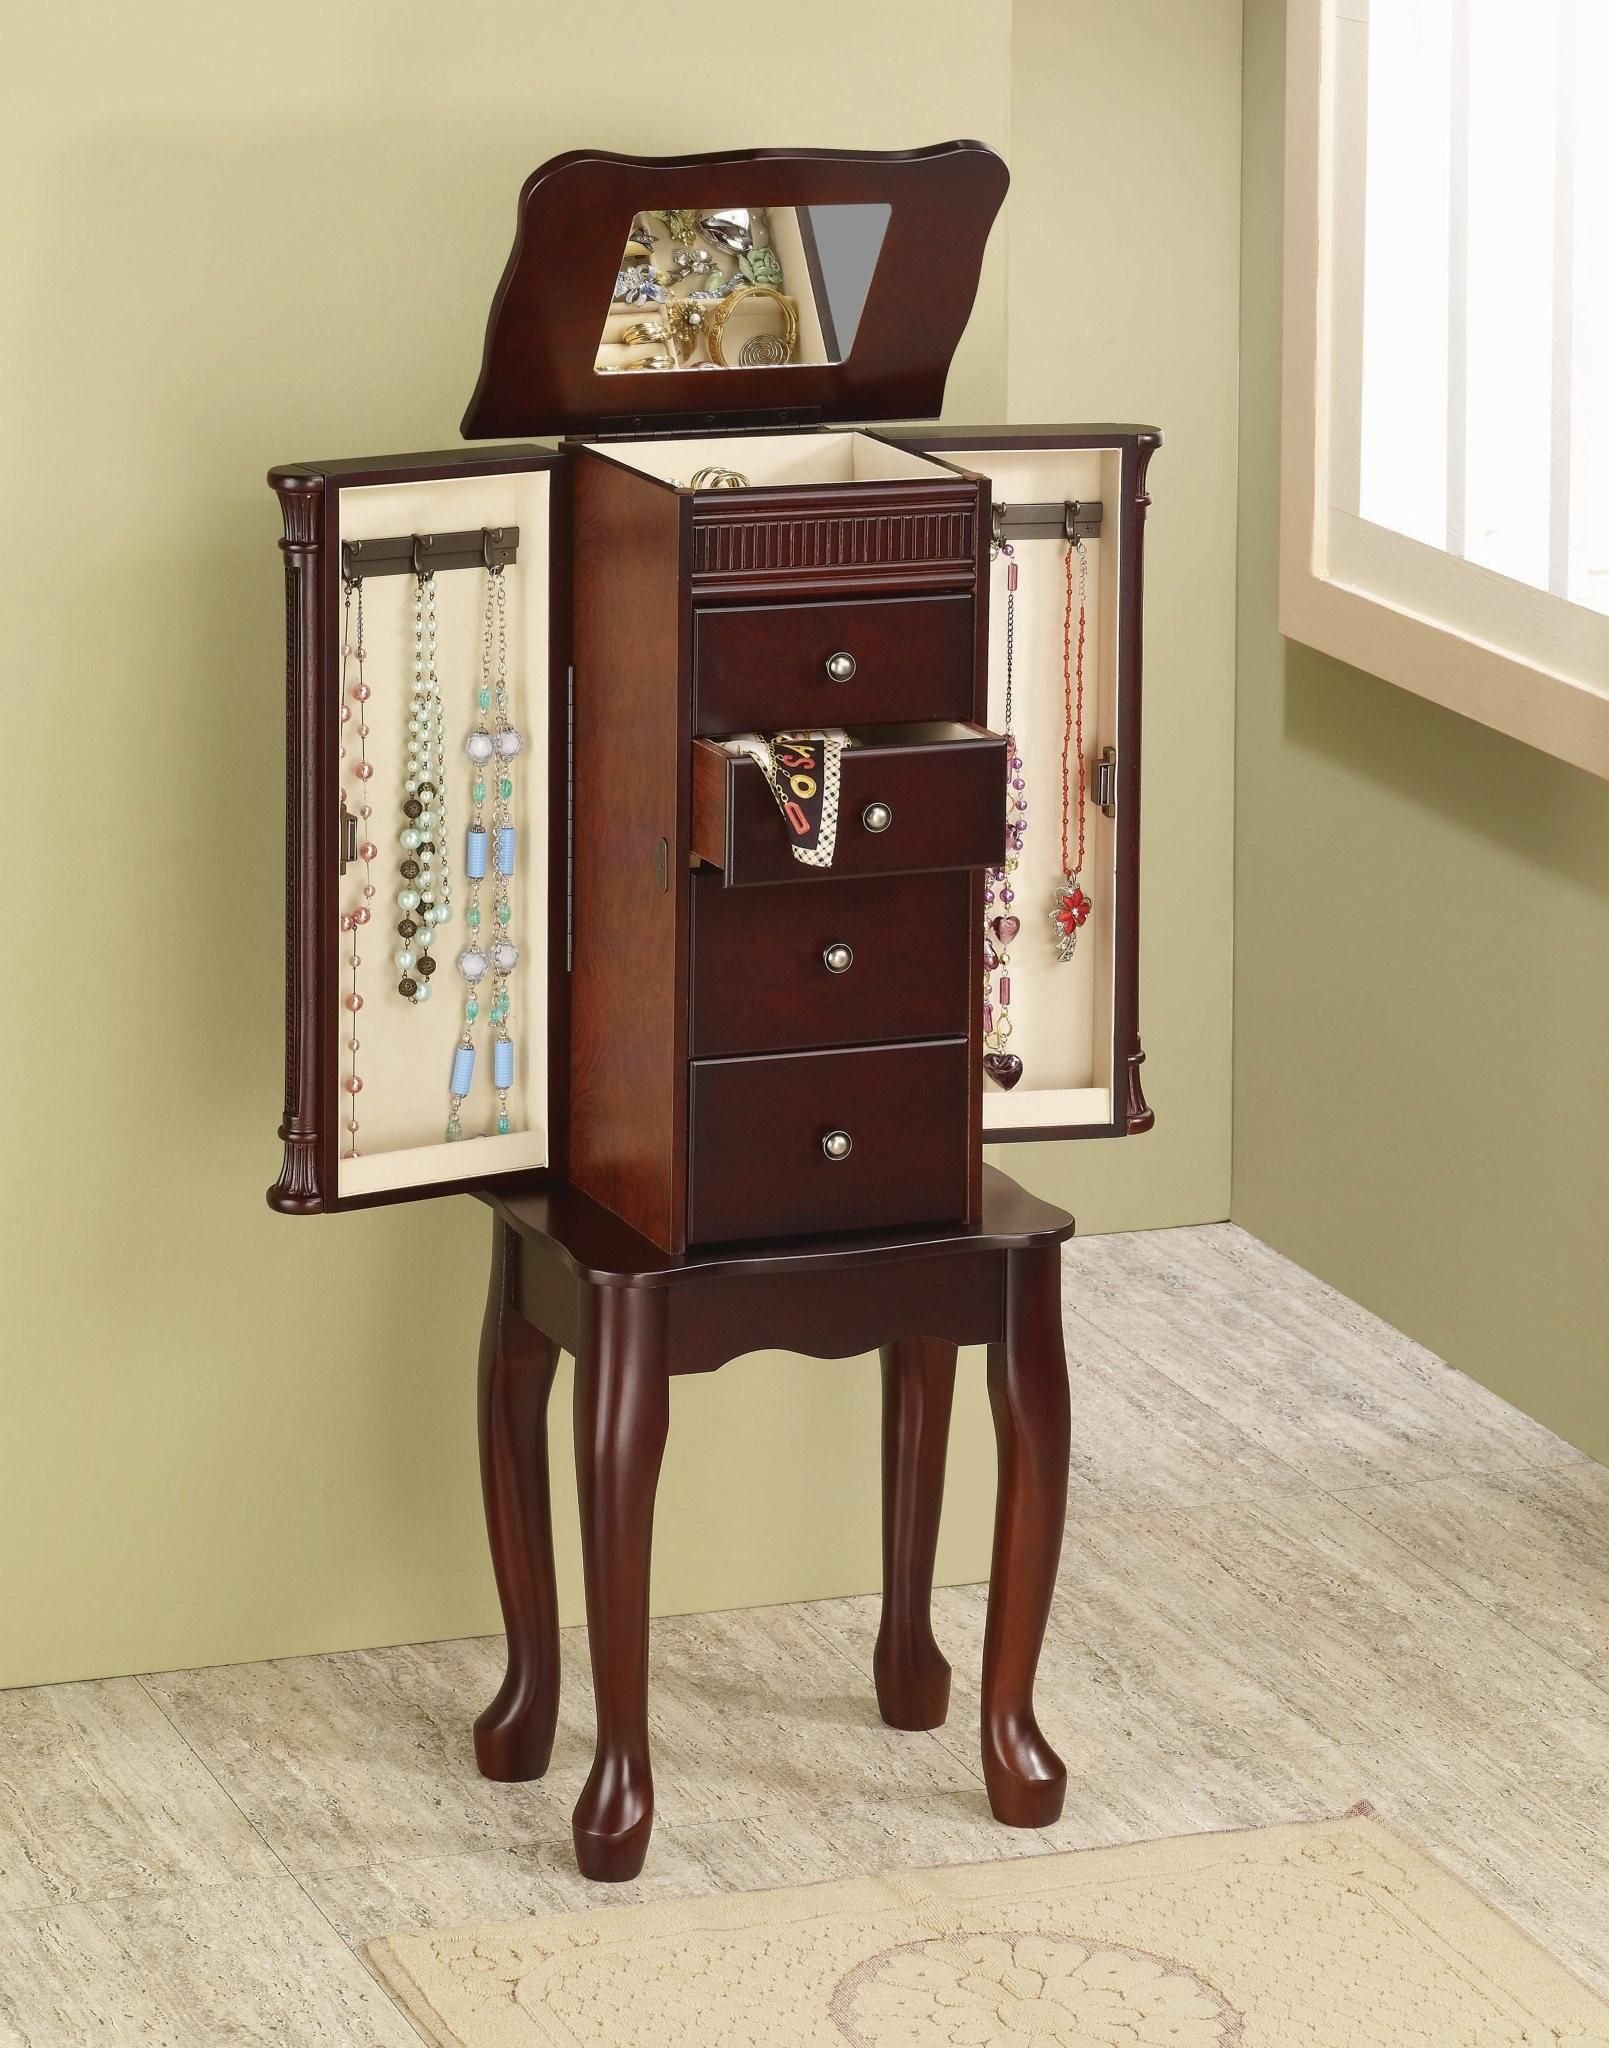 Traditional Cherry Finish Jewelry Armoire Lingerie Chest by Coaster